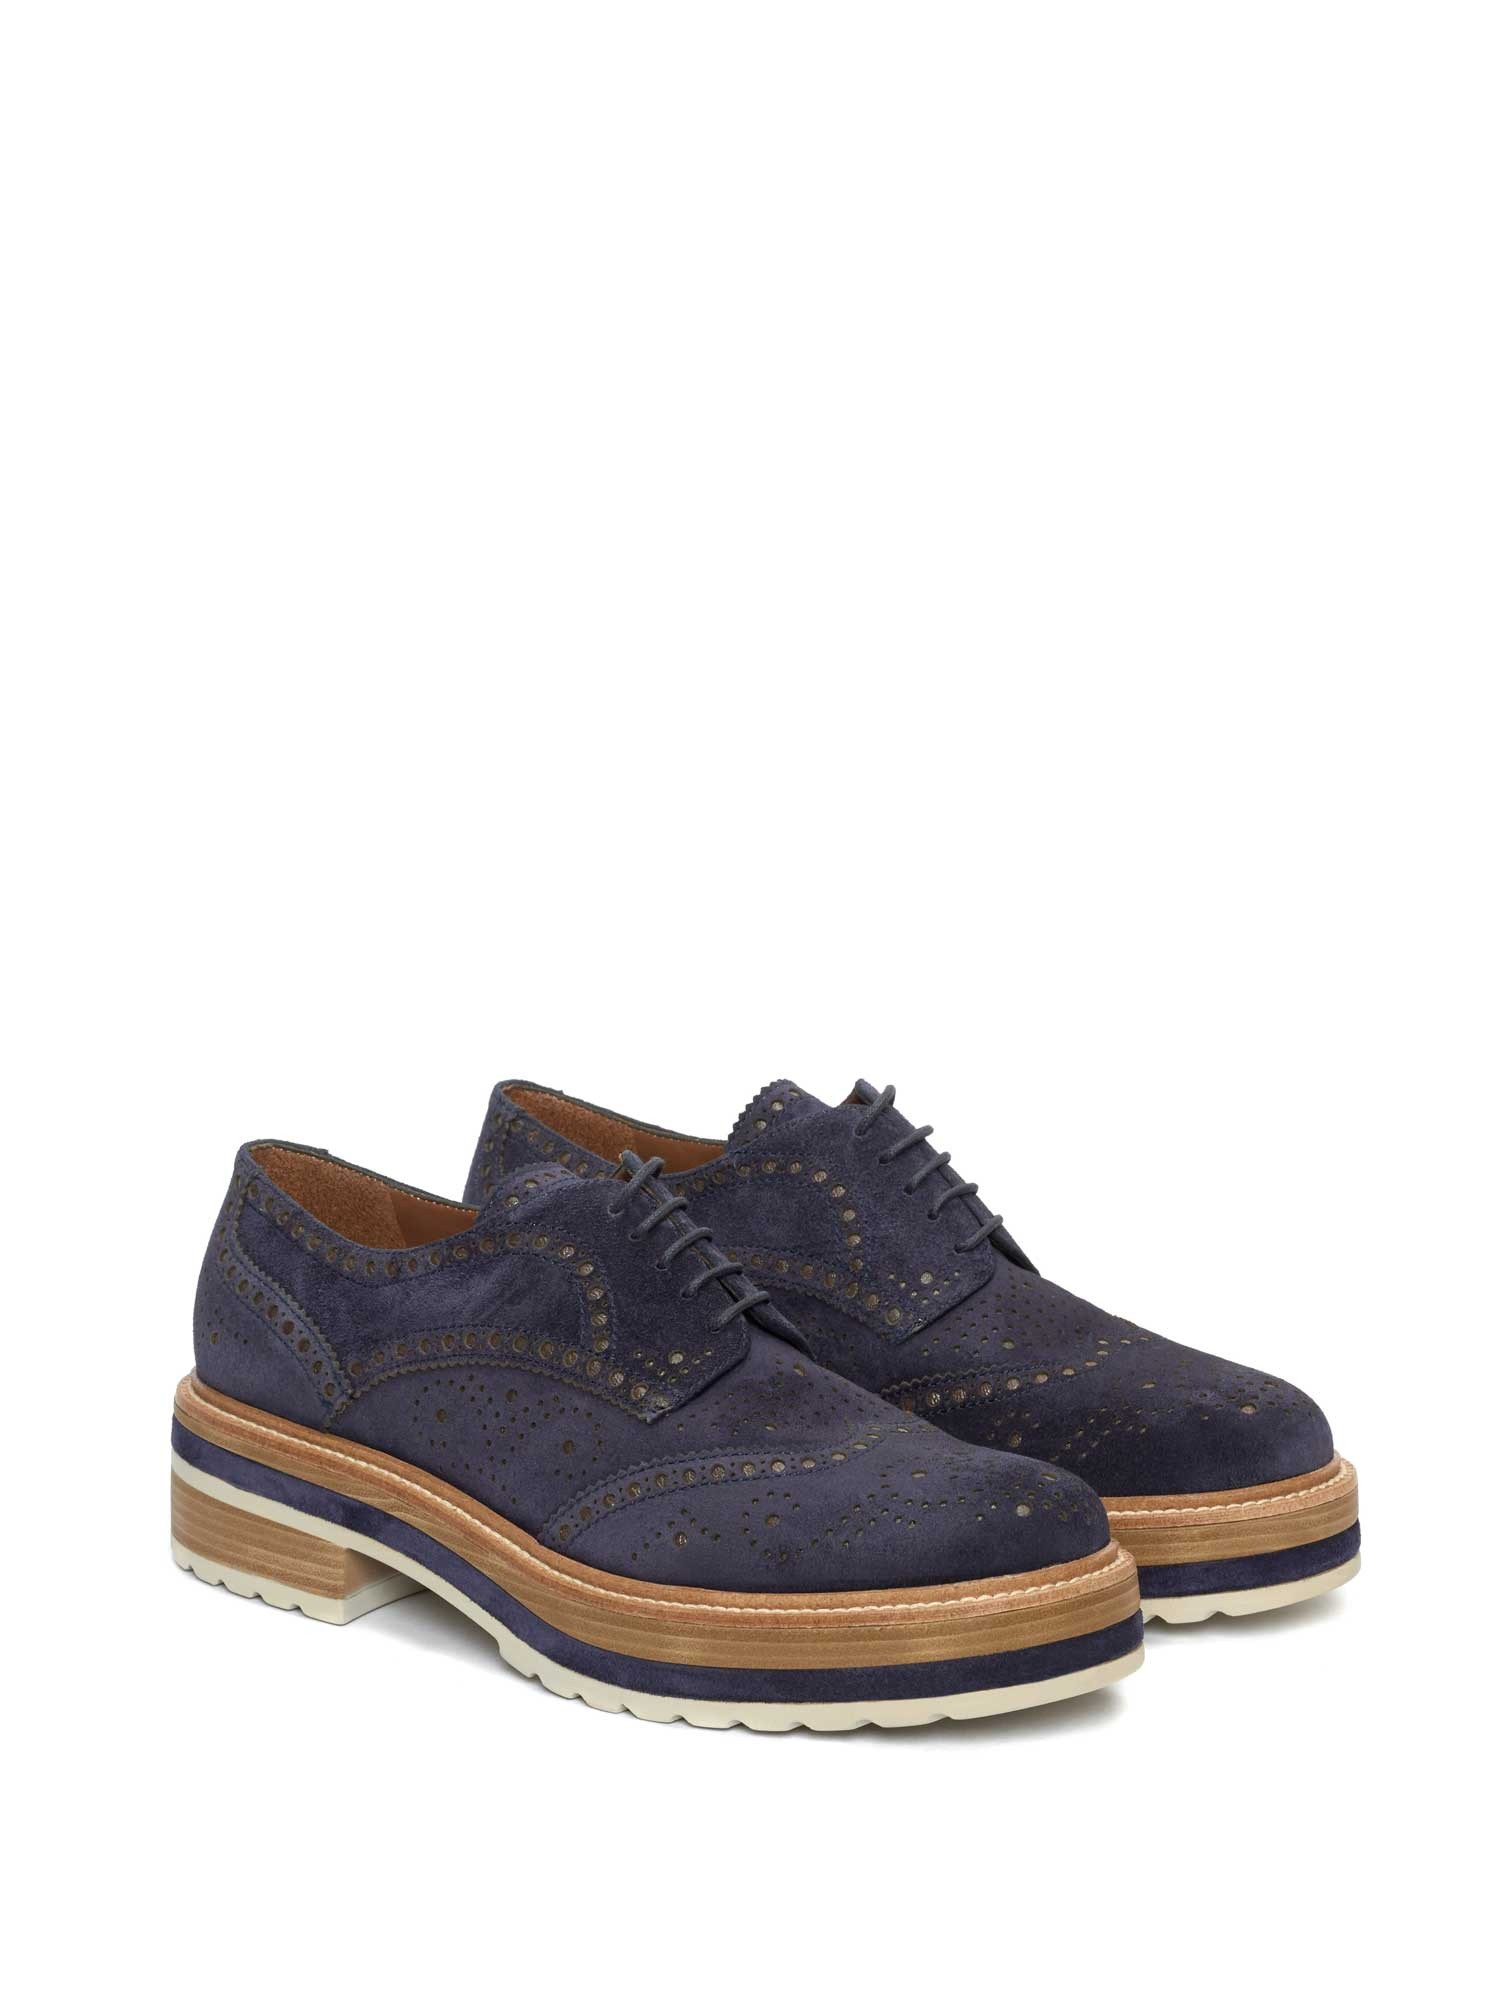 ANDREA VELOUR NAVY SHOES